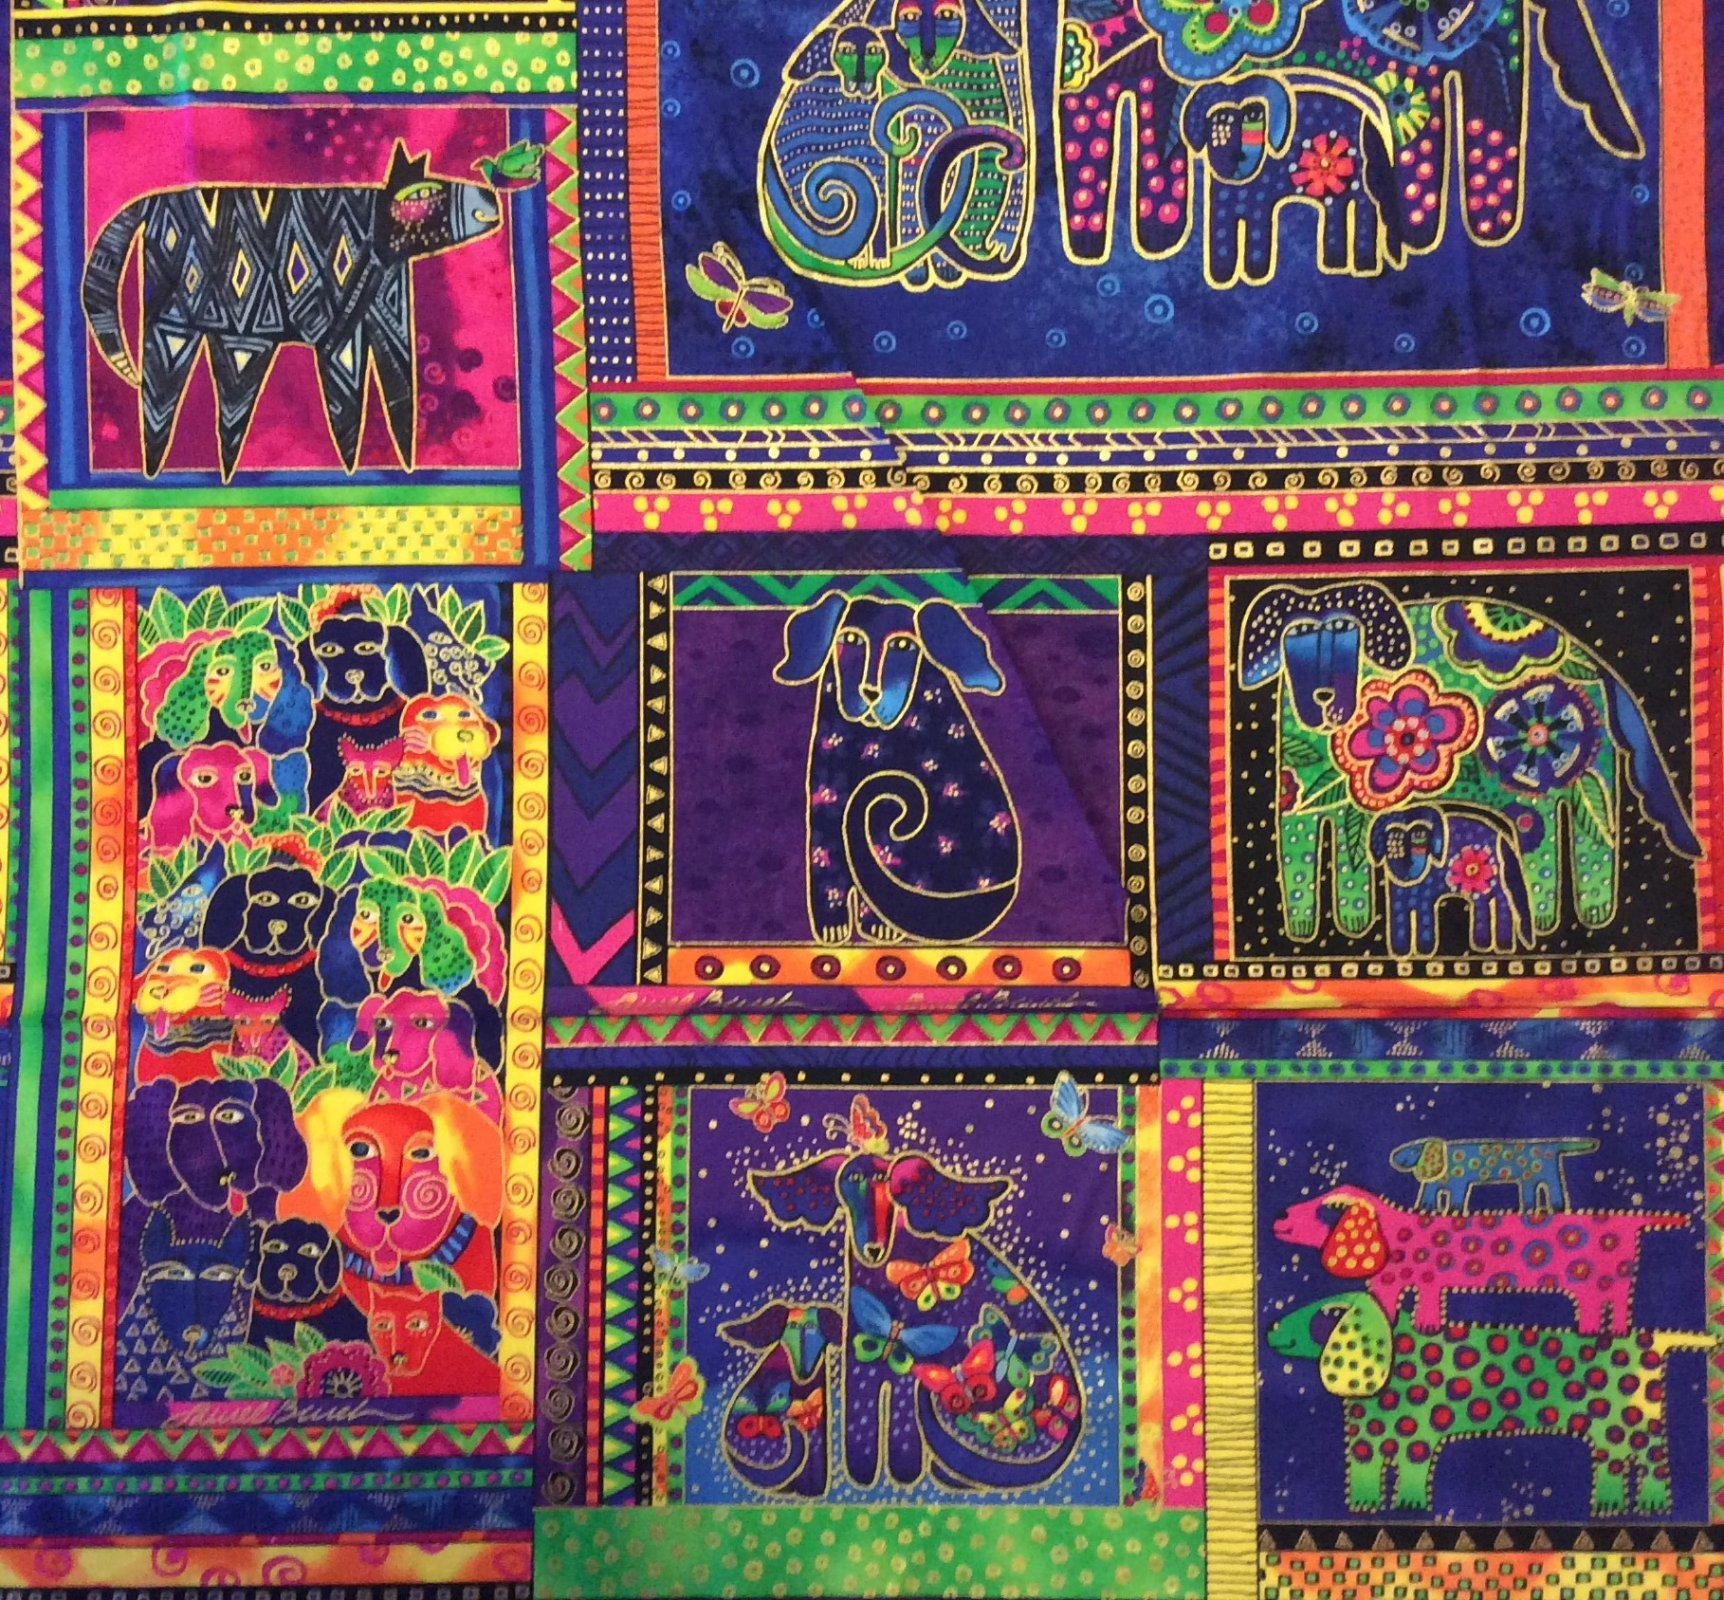 Laurel Burch Dog Puppies Colorful Psychedelic Painting Watercolor PANEL Cotton Quilt Fabric CL21